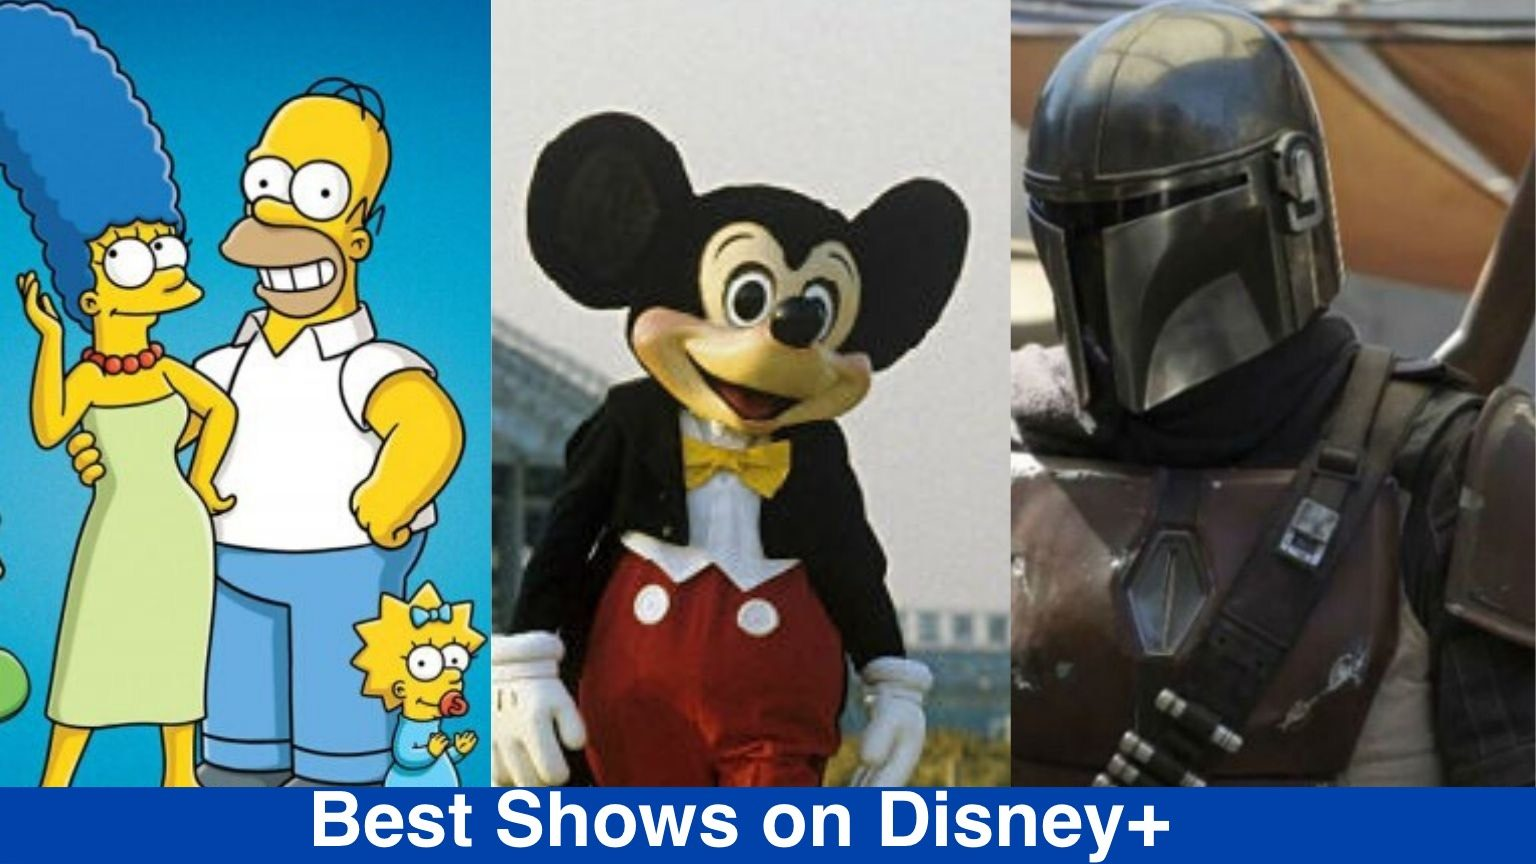 Best Disney+ Shows: The Simpsons, Mickey Mouse and the Mandalorian